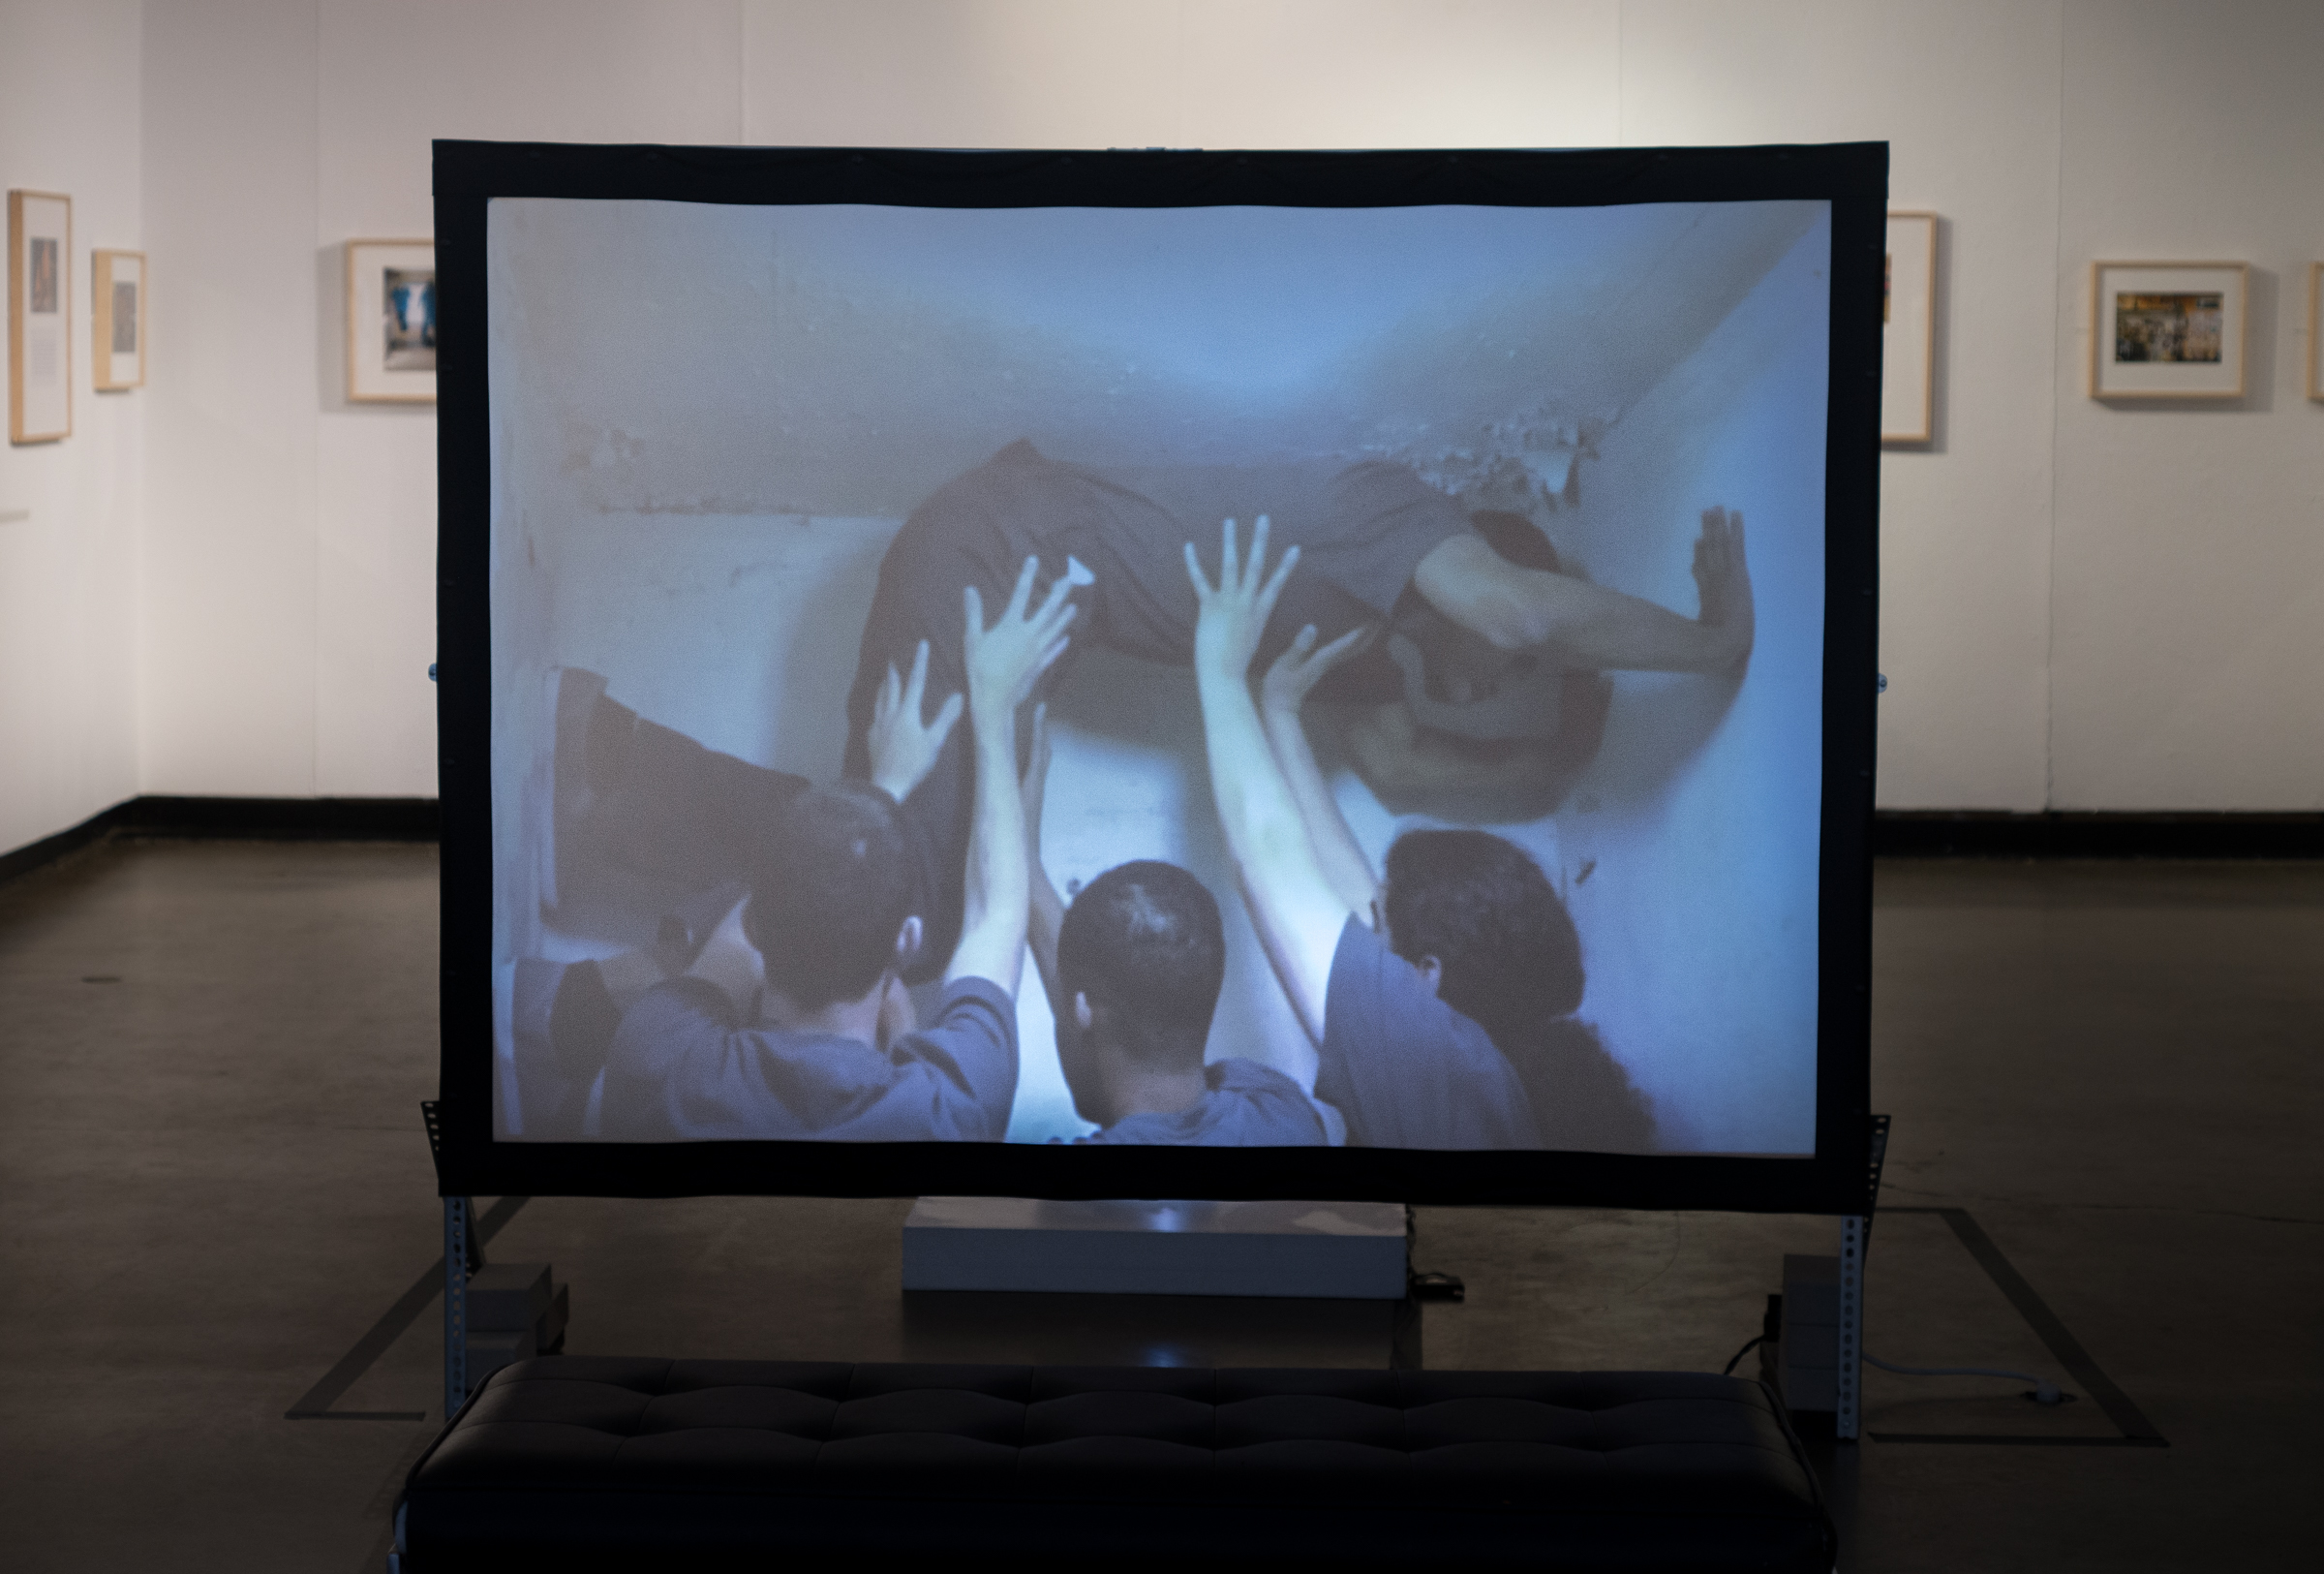 video installation still of dancers in a cell